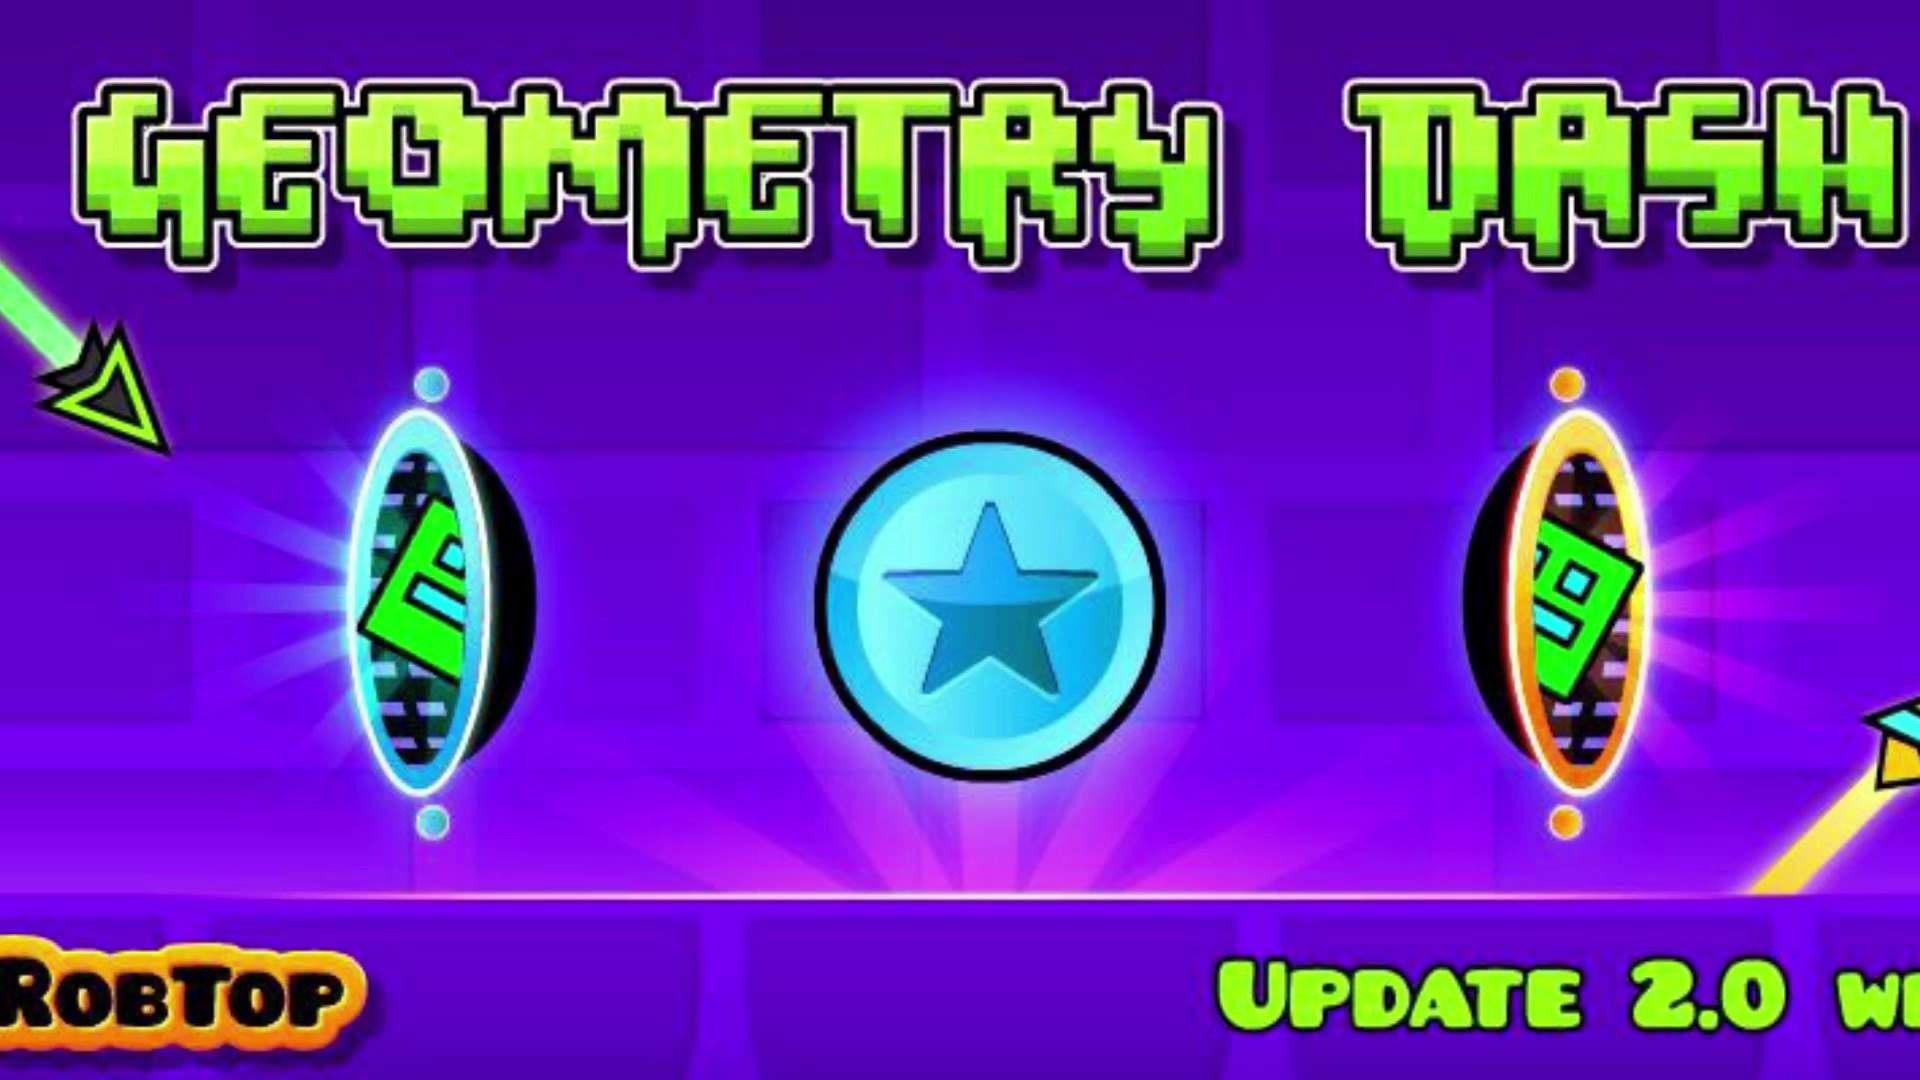 Going Over This Again – Geometry Dash 2.0 Hint